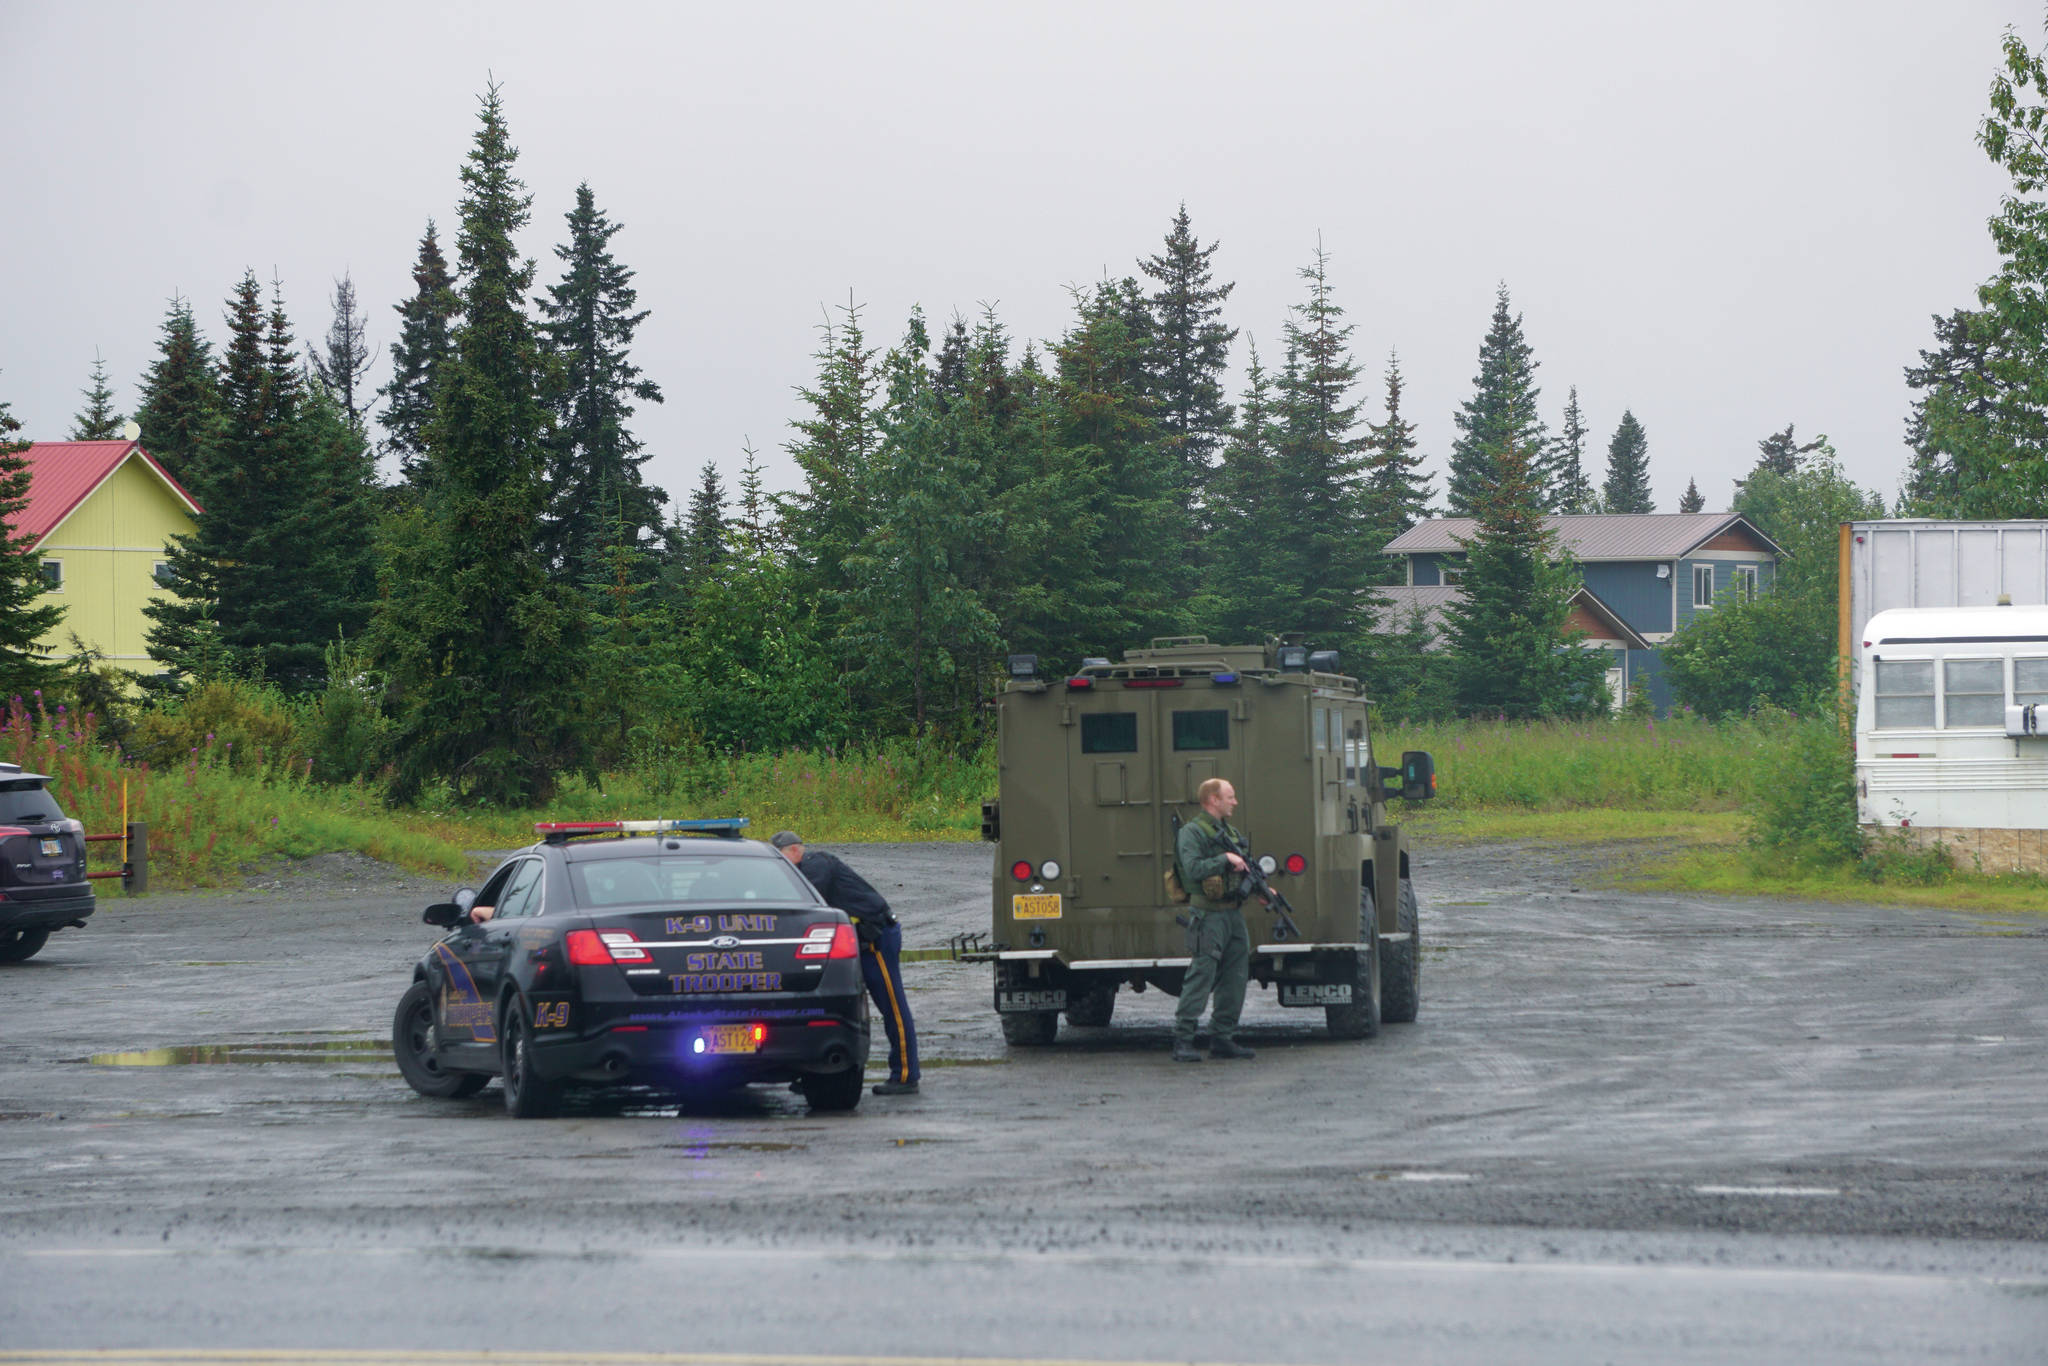 Alaska State Troopers and members of the Special Emergency Reaction Team respond at a shooting scene on Monday, Aug. 23, 2021, at the Anchor Point Warehouse in Anchor Point, Alaska, on the Sterling Highway. An Alaska State Trooper was shot and is in fair condition at an Anchorage hospital. Troopers arrested the suspect, Bret Herrick, 60, on Tuesday morning, Aug. 24, 2021. (Photo by Michael Armstrong/Homer News)